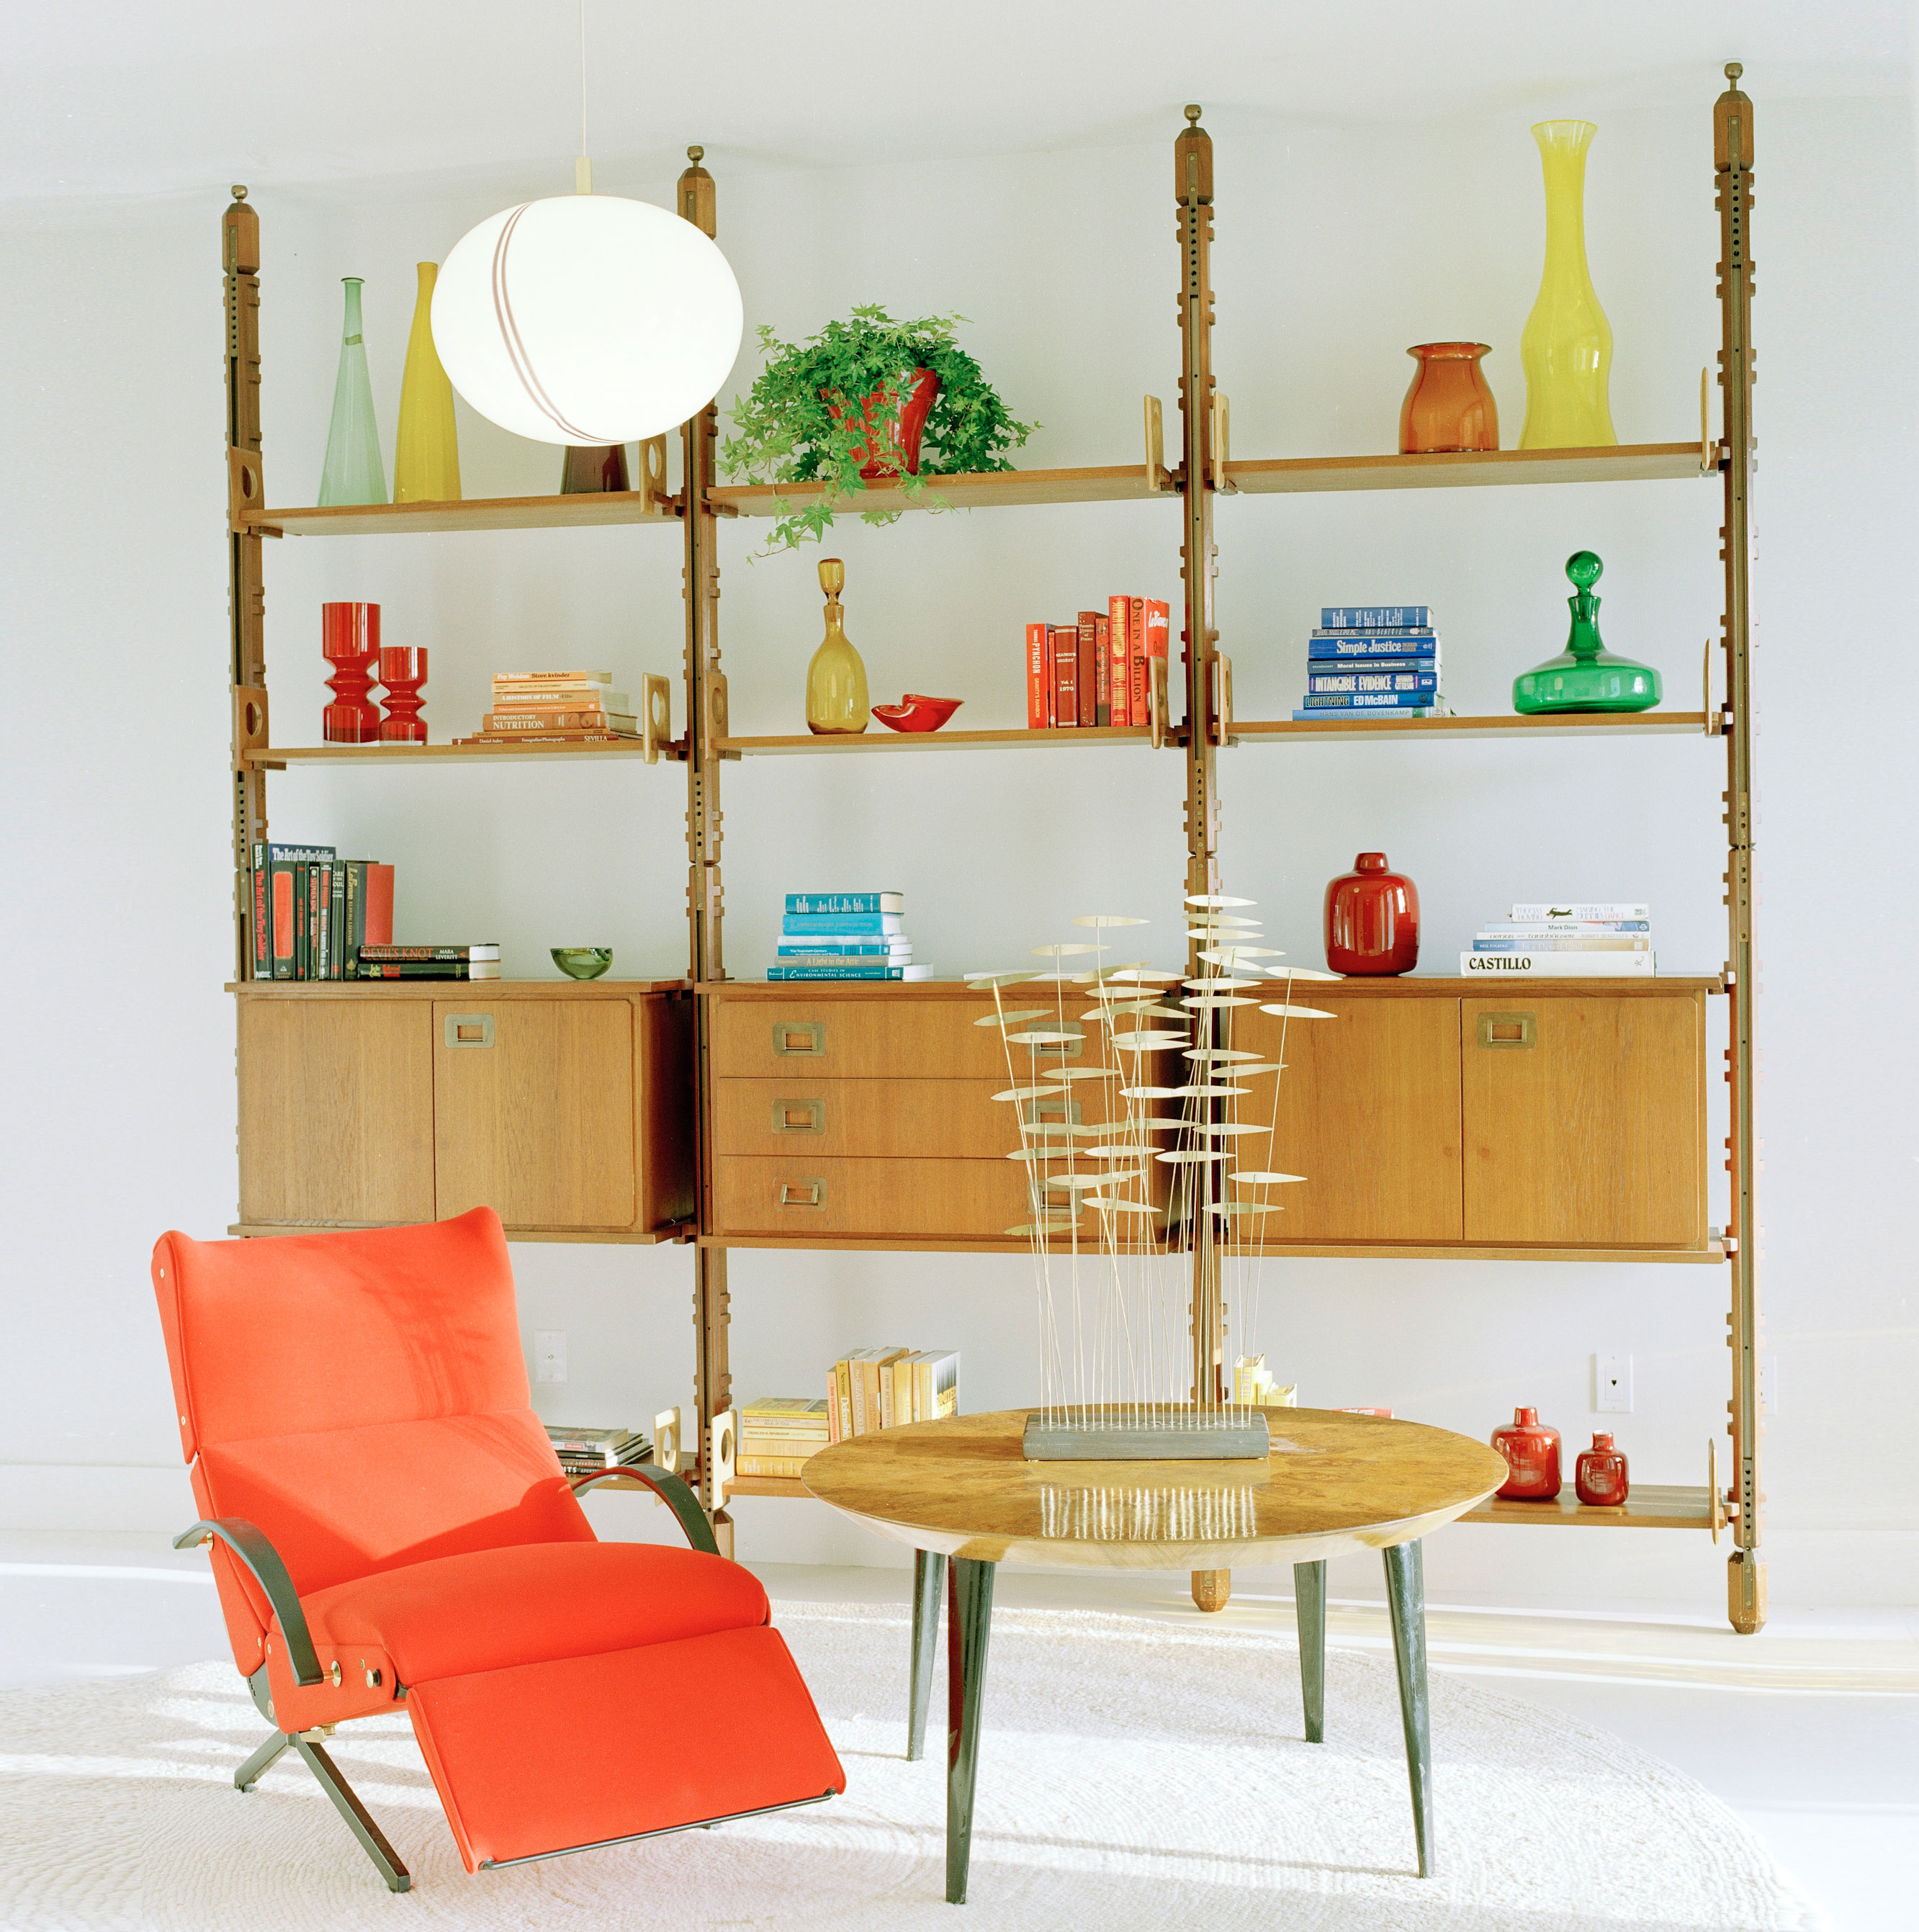 In The Study A Vintage 1950 Tomato Red Leather P40 Chaise By Osvaldo Borsani Sports Rubber Armrests And Brass Details Shelving Unit Is Design